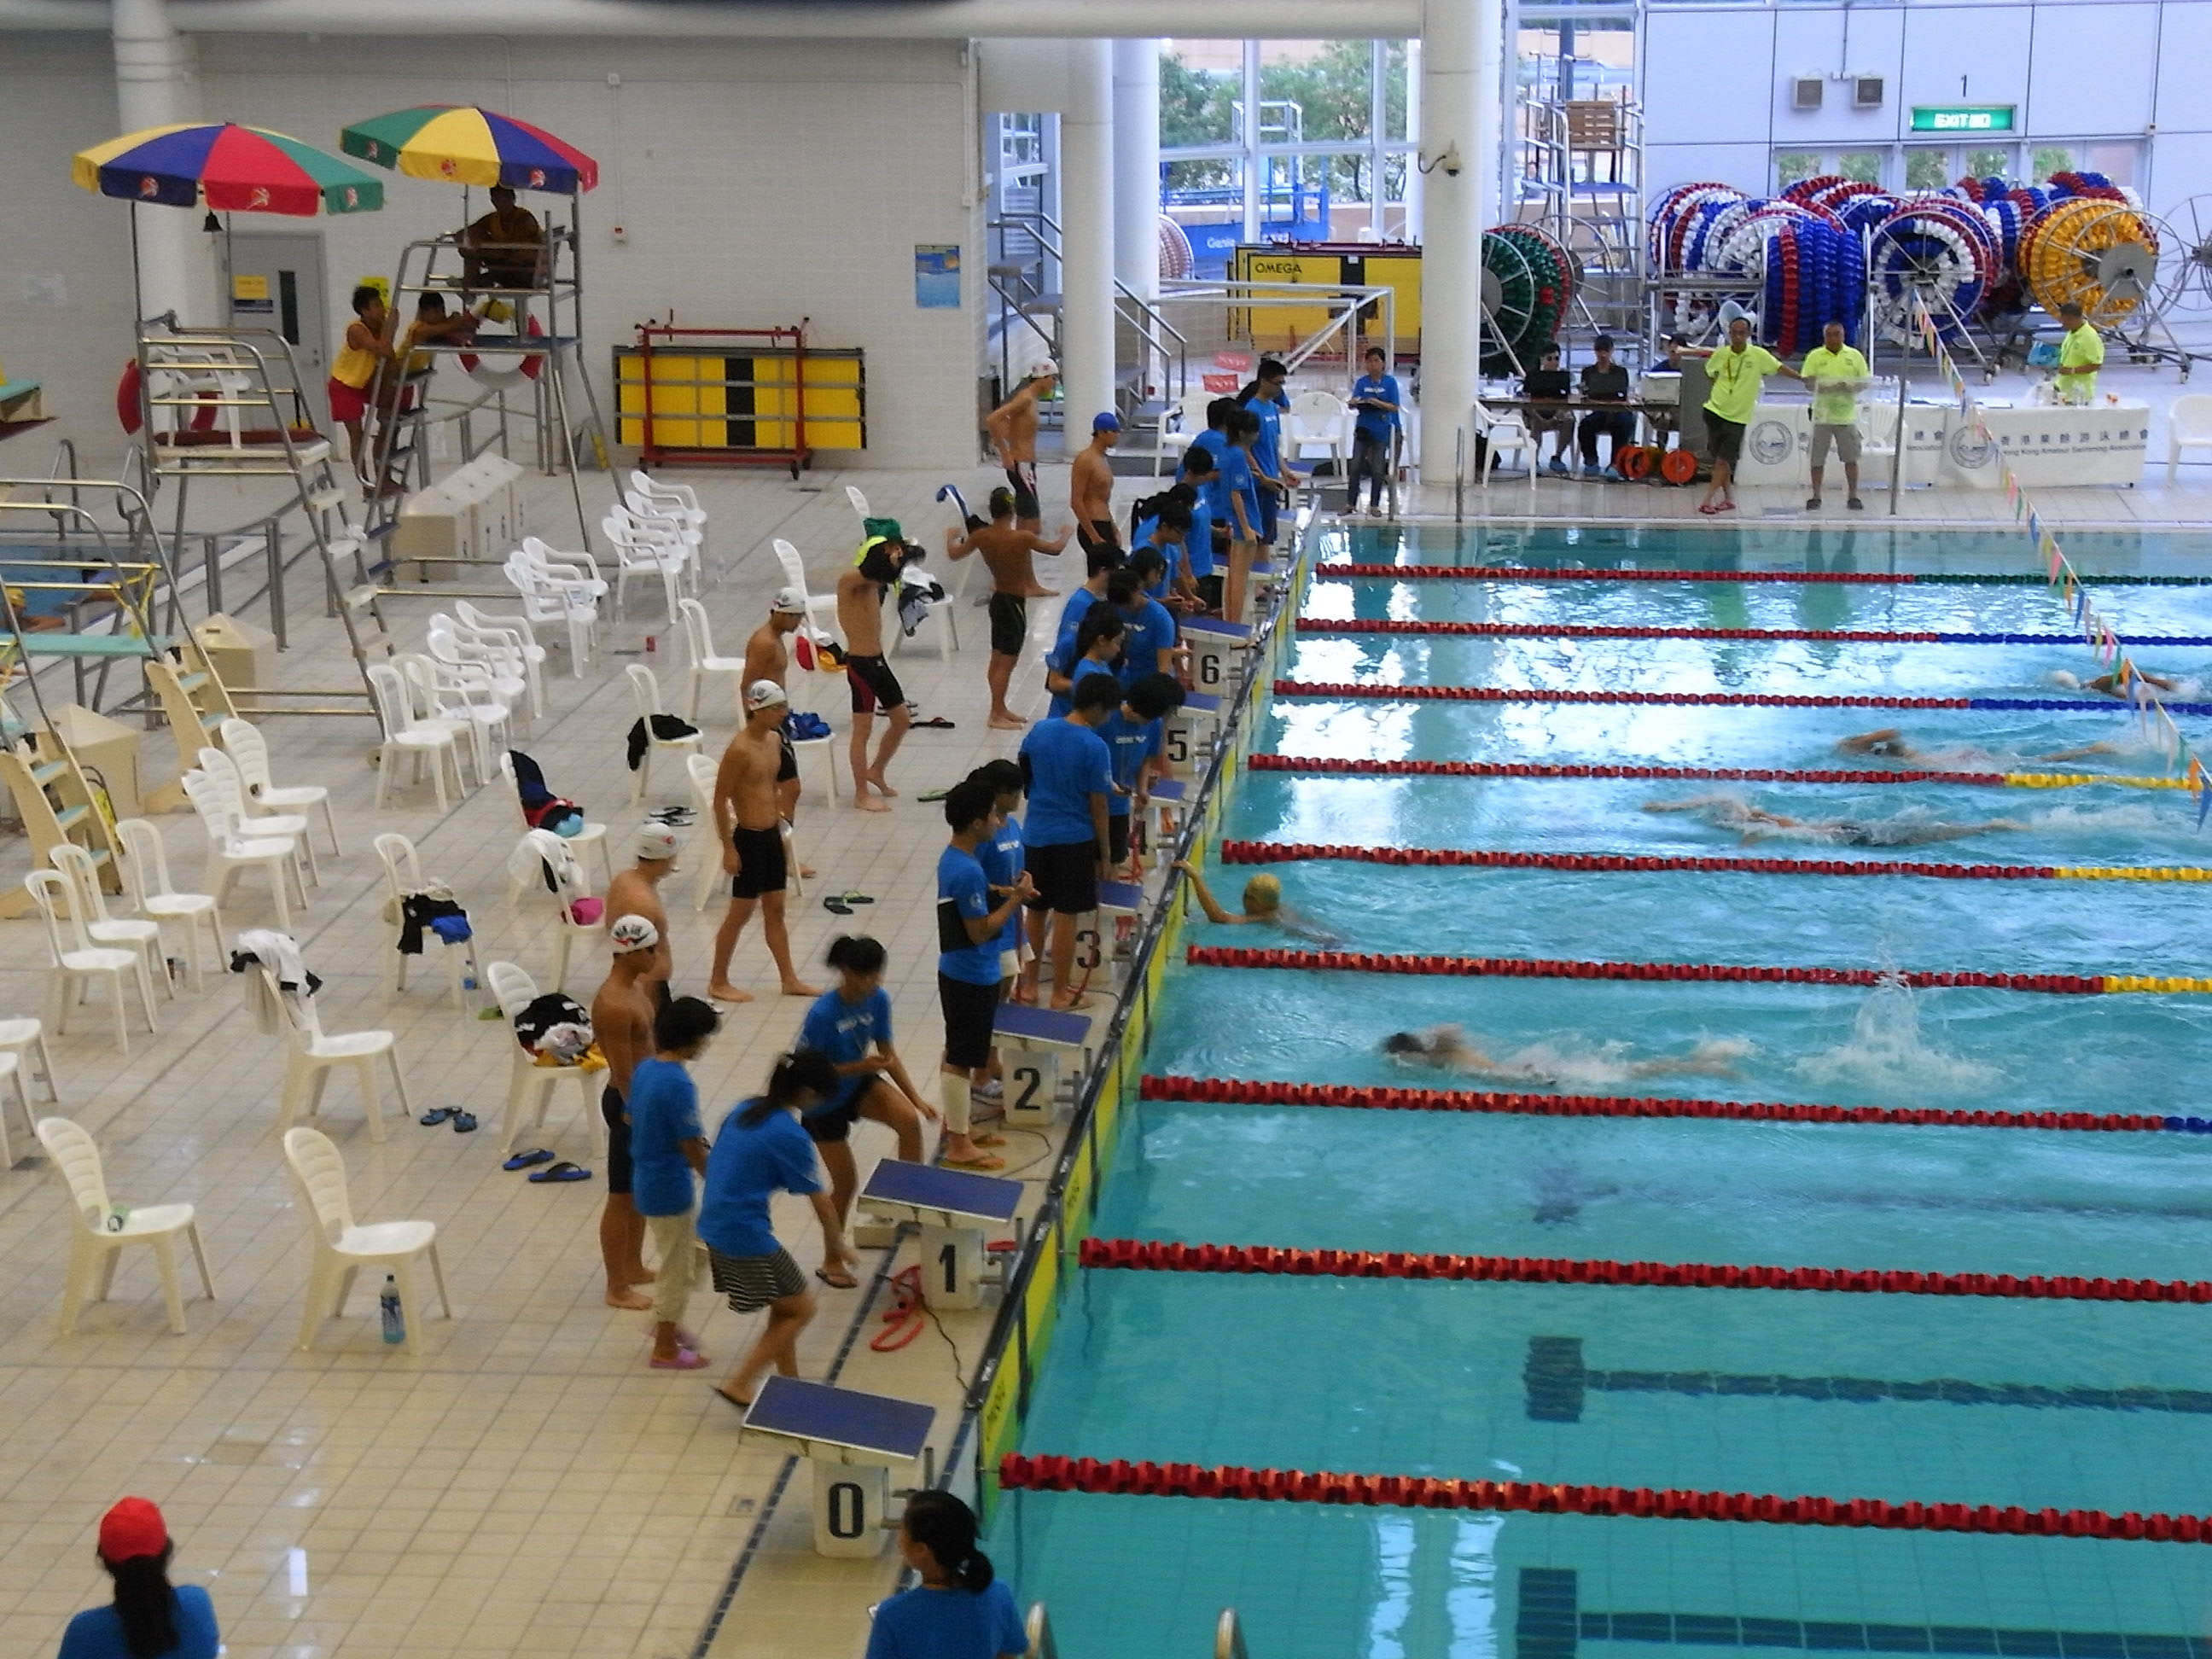 File Hk Tst Kln Park Swimming Pool C2 Indoor Competition July 2012 Jpg Wikimedia Commons